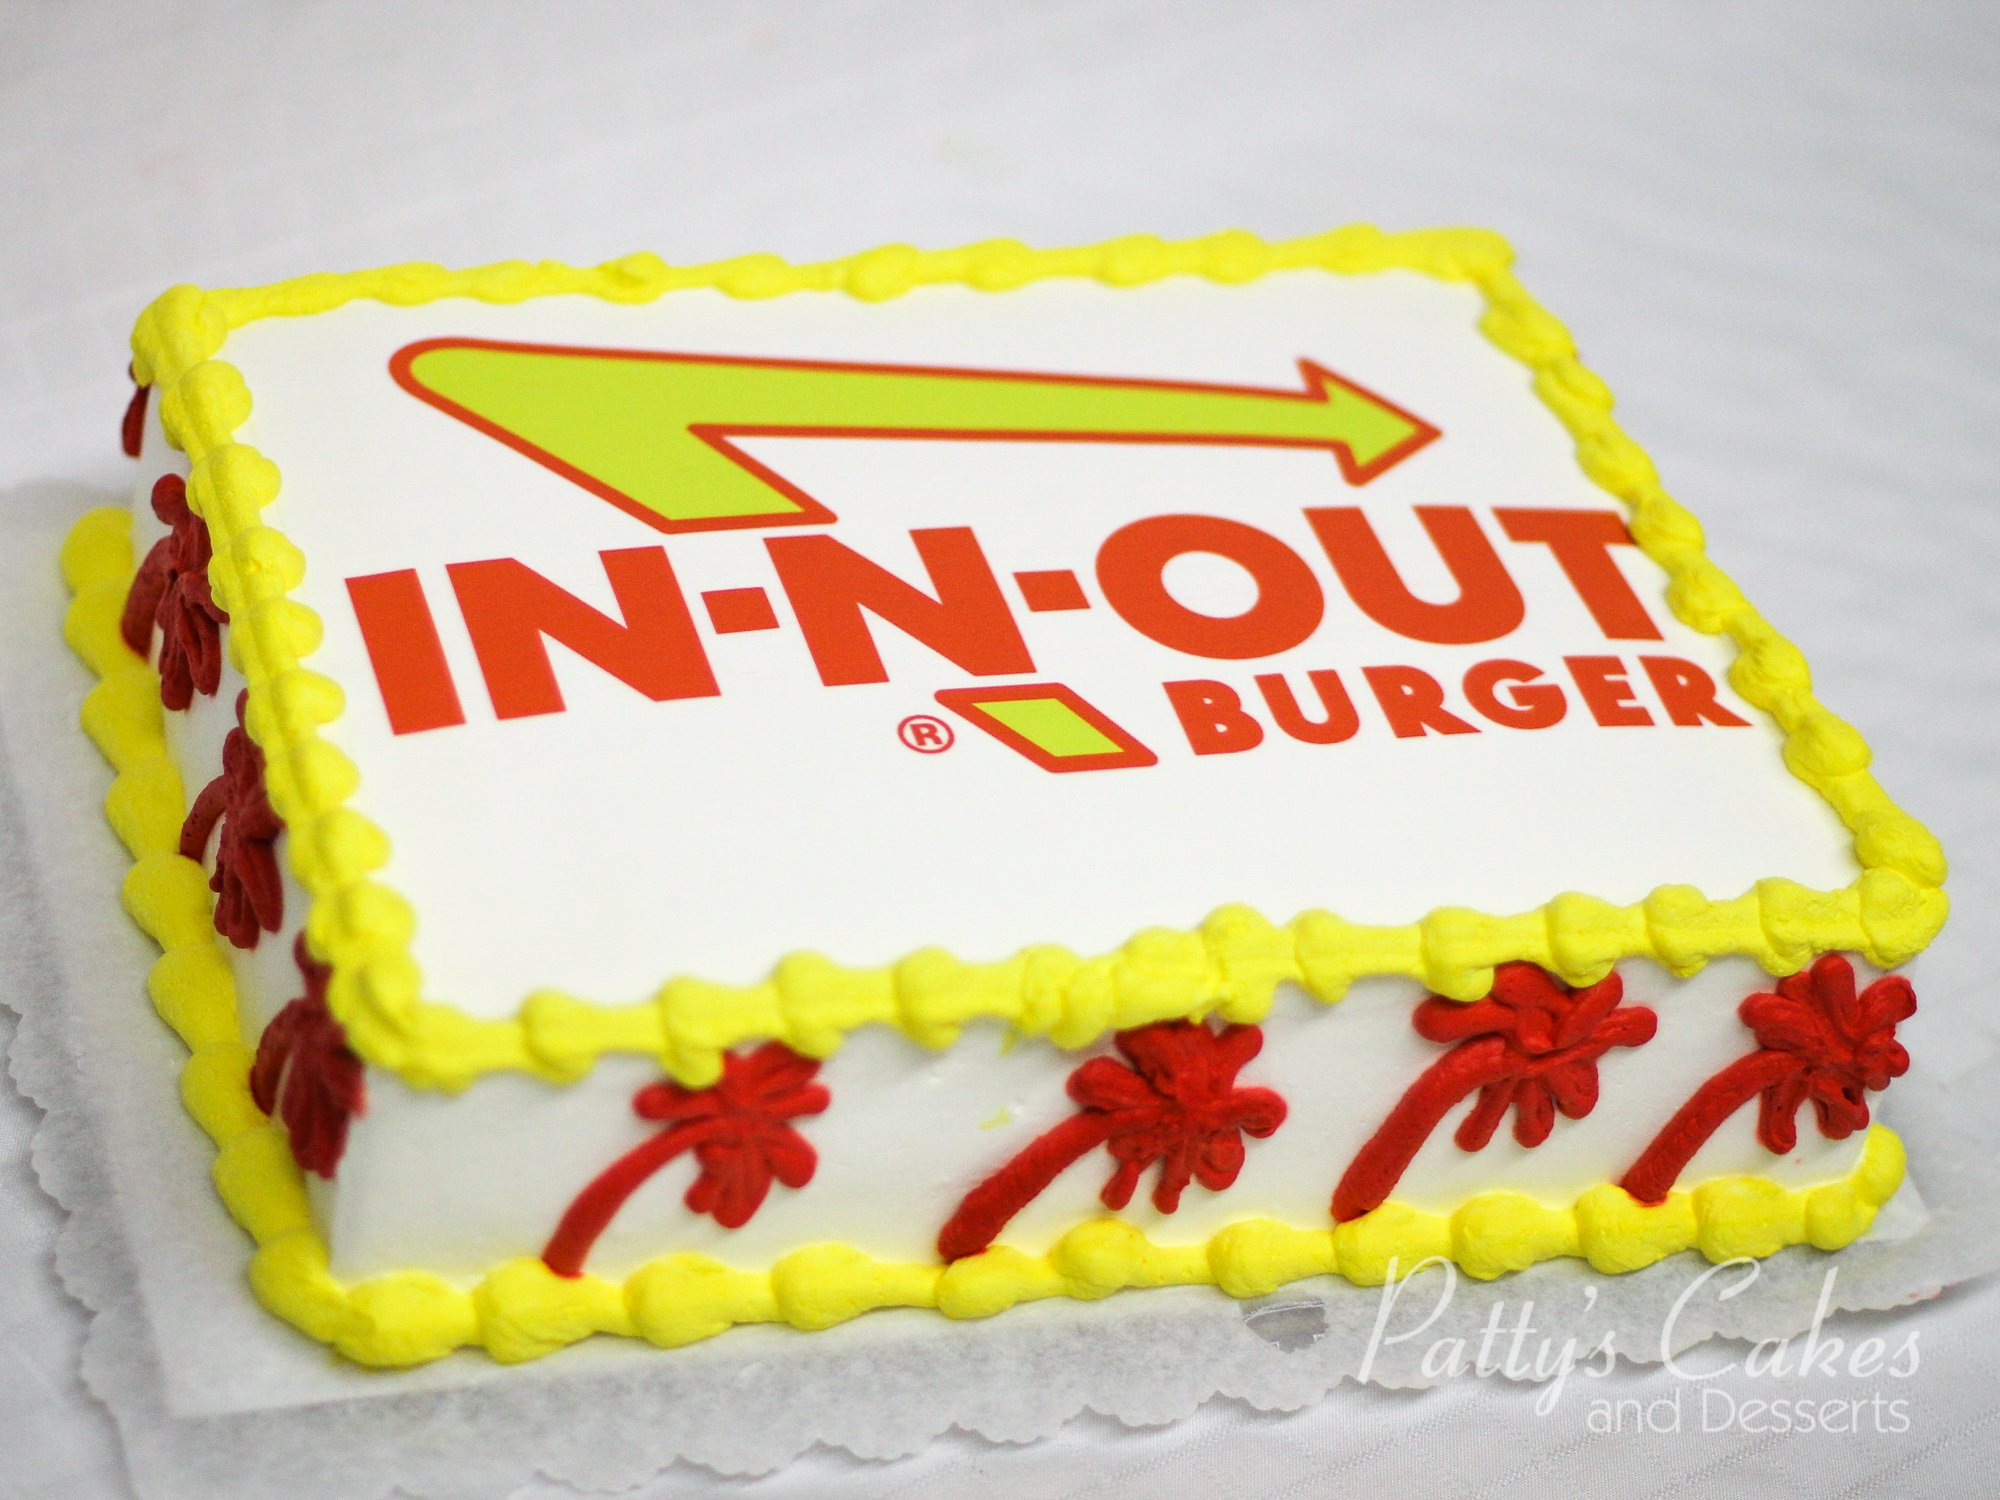 Photo Of A In N Out Burger Cake Patty S Cakes And Desserts